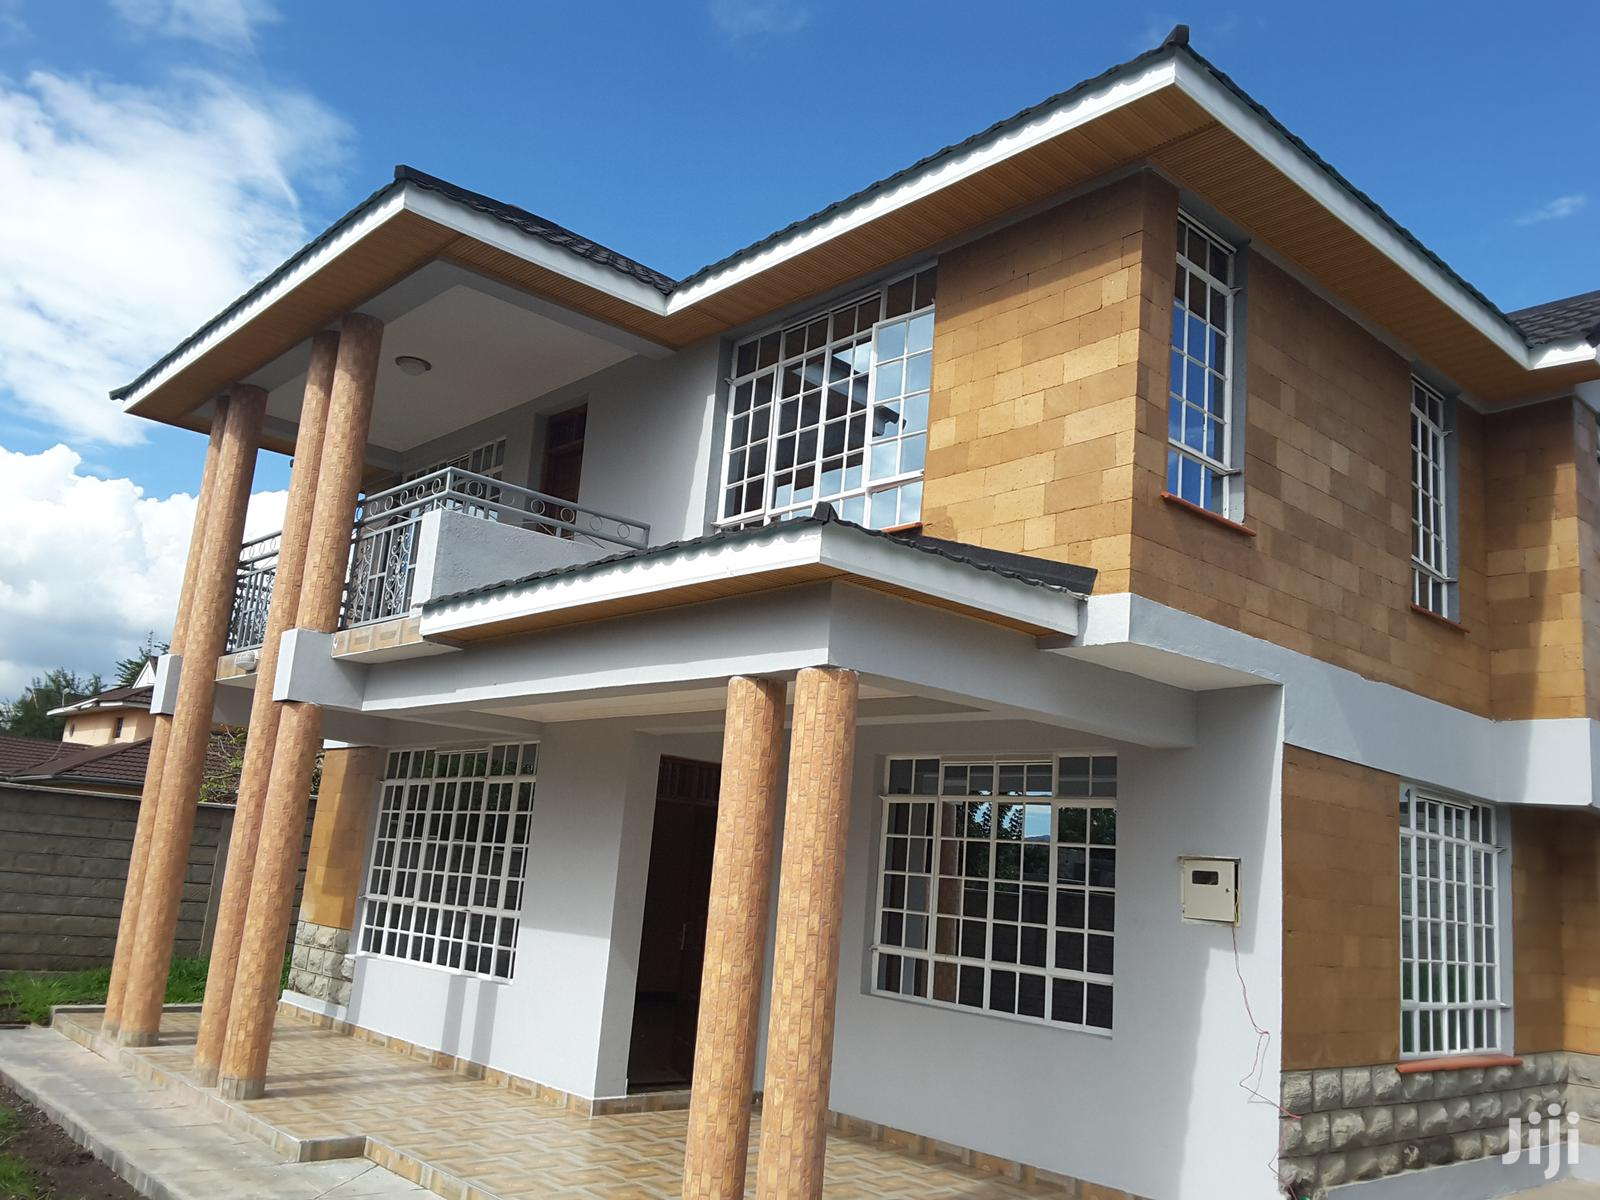 4 BR Houses in Ongata Rongai